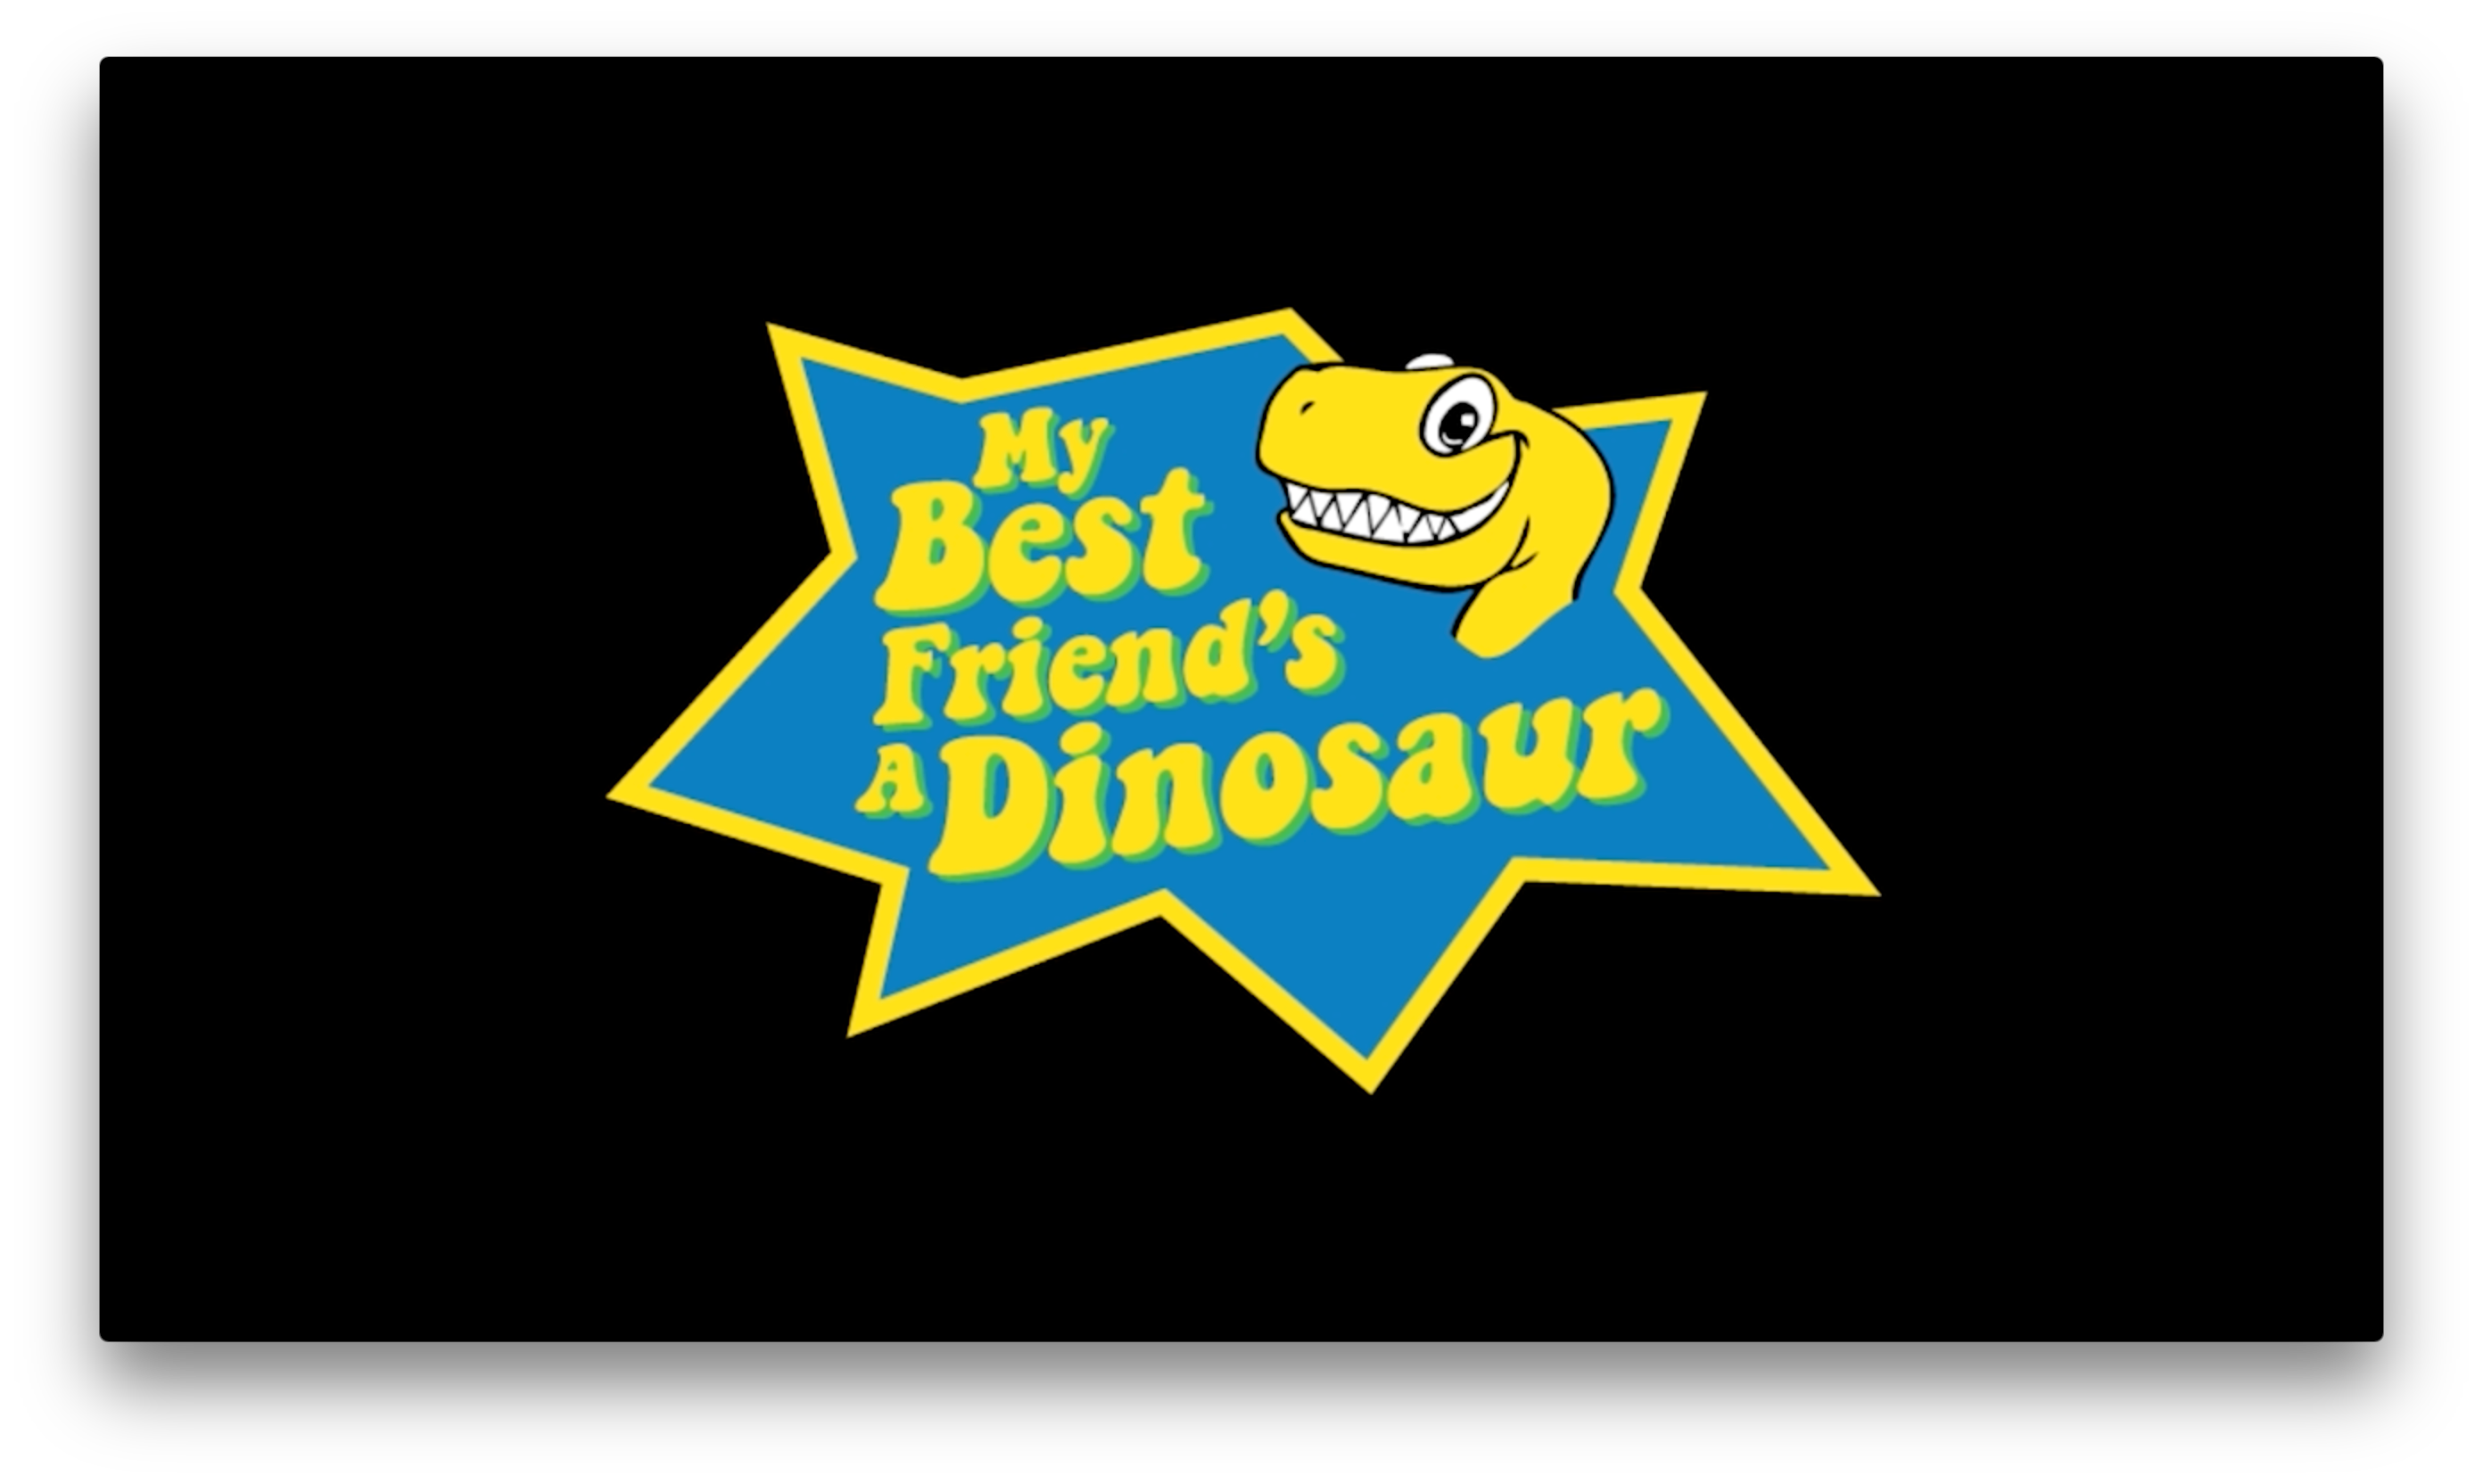 My Best Friend Is a Dinosaur Video